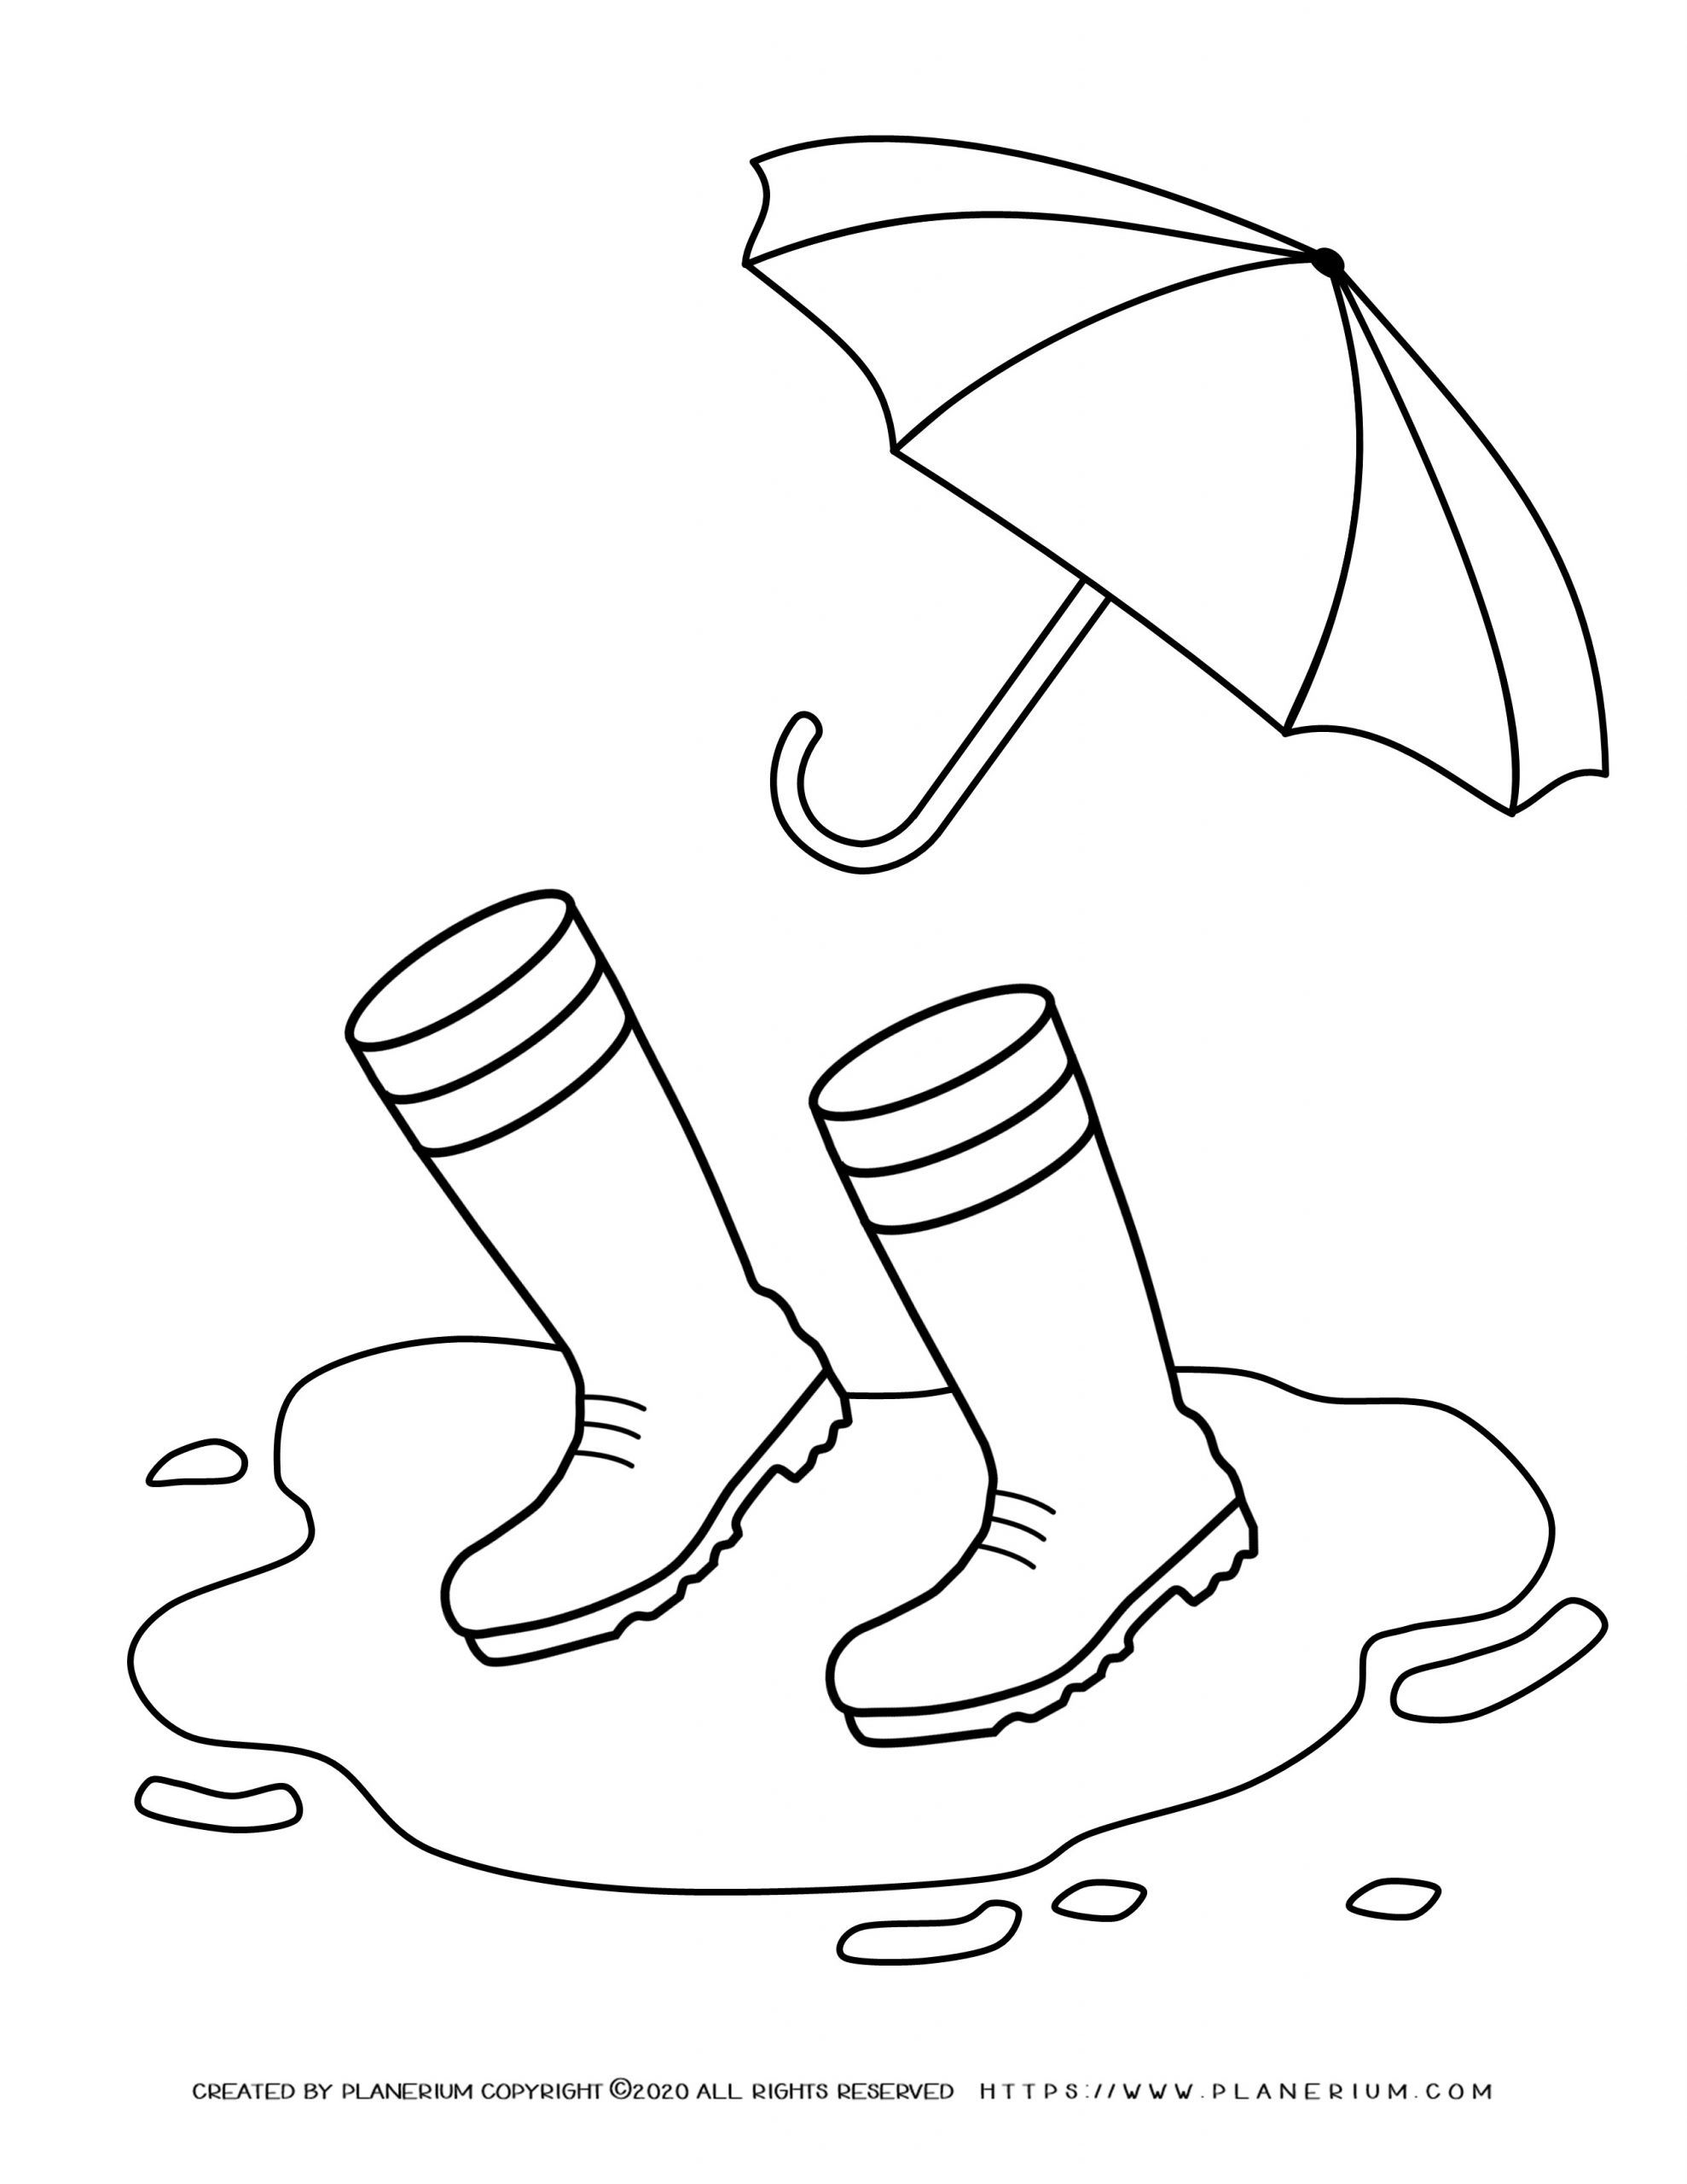 Spring coloring page - Boots in the pond